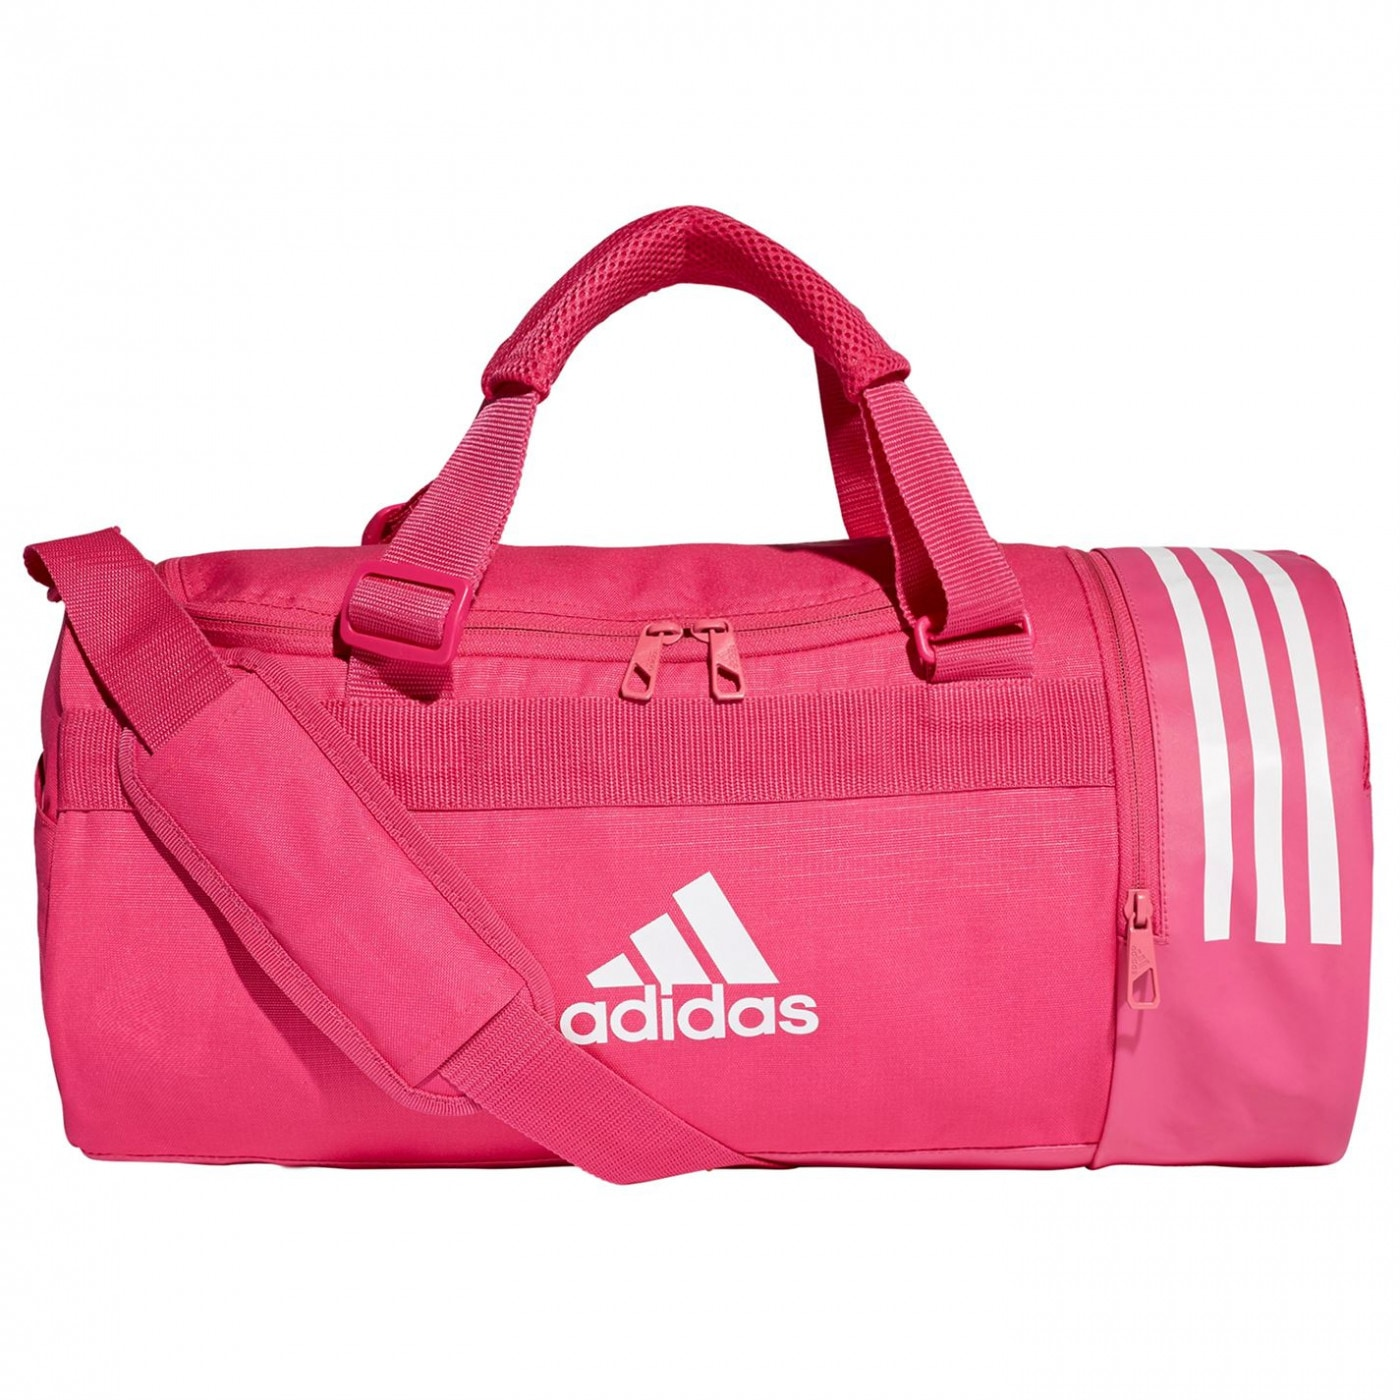 Adidas Convertible 3-Stripes Duffel Bag Small